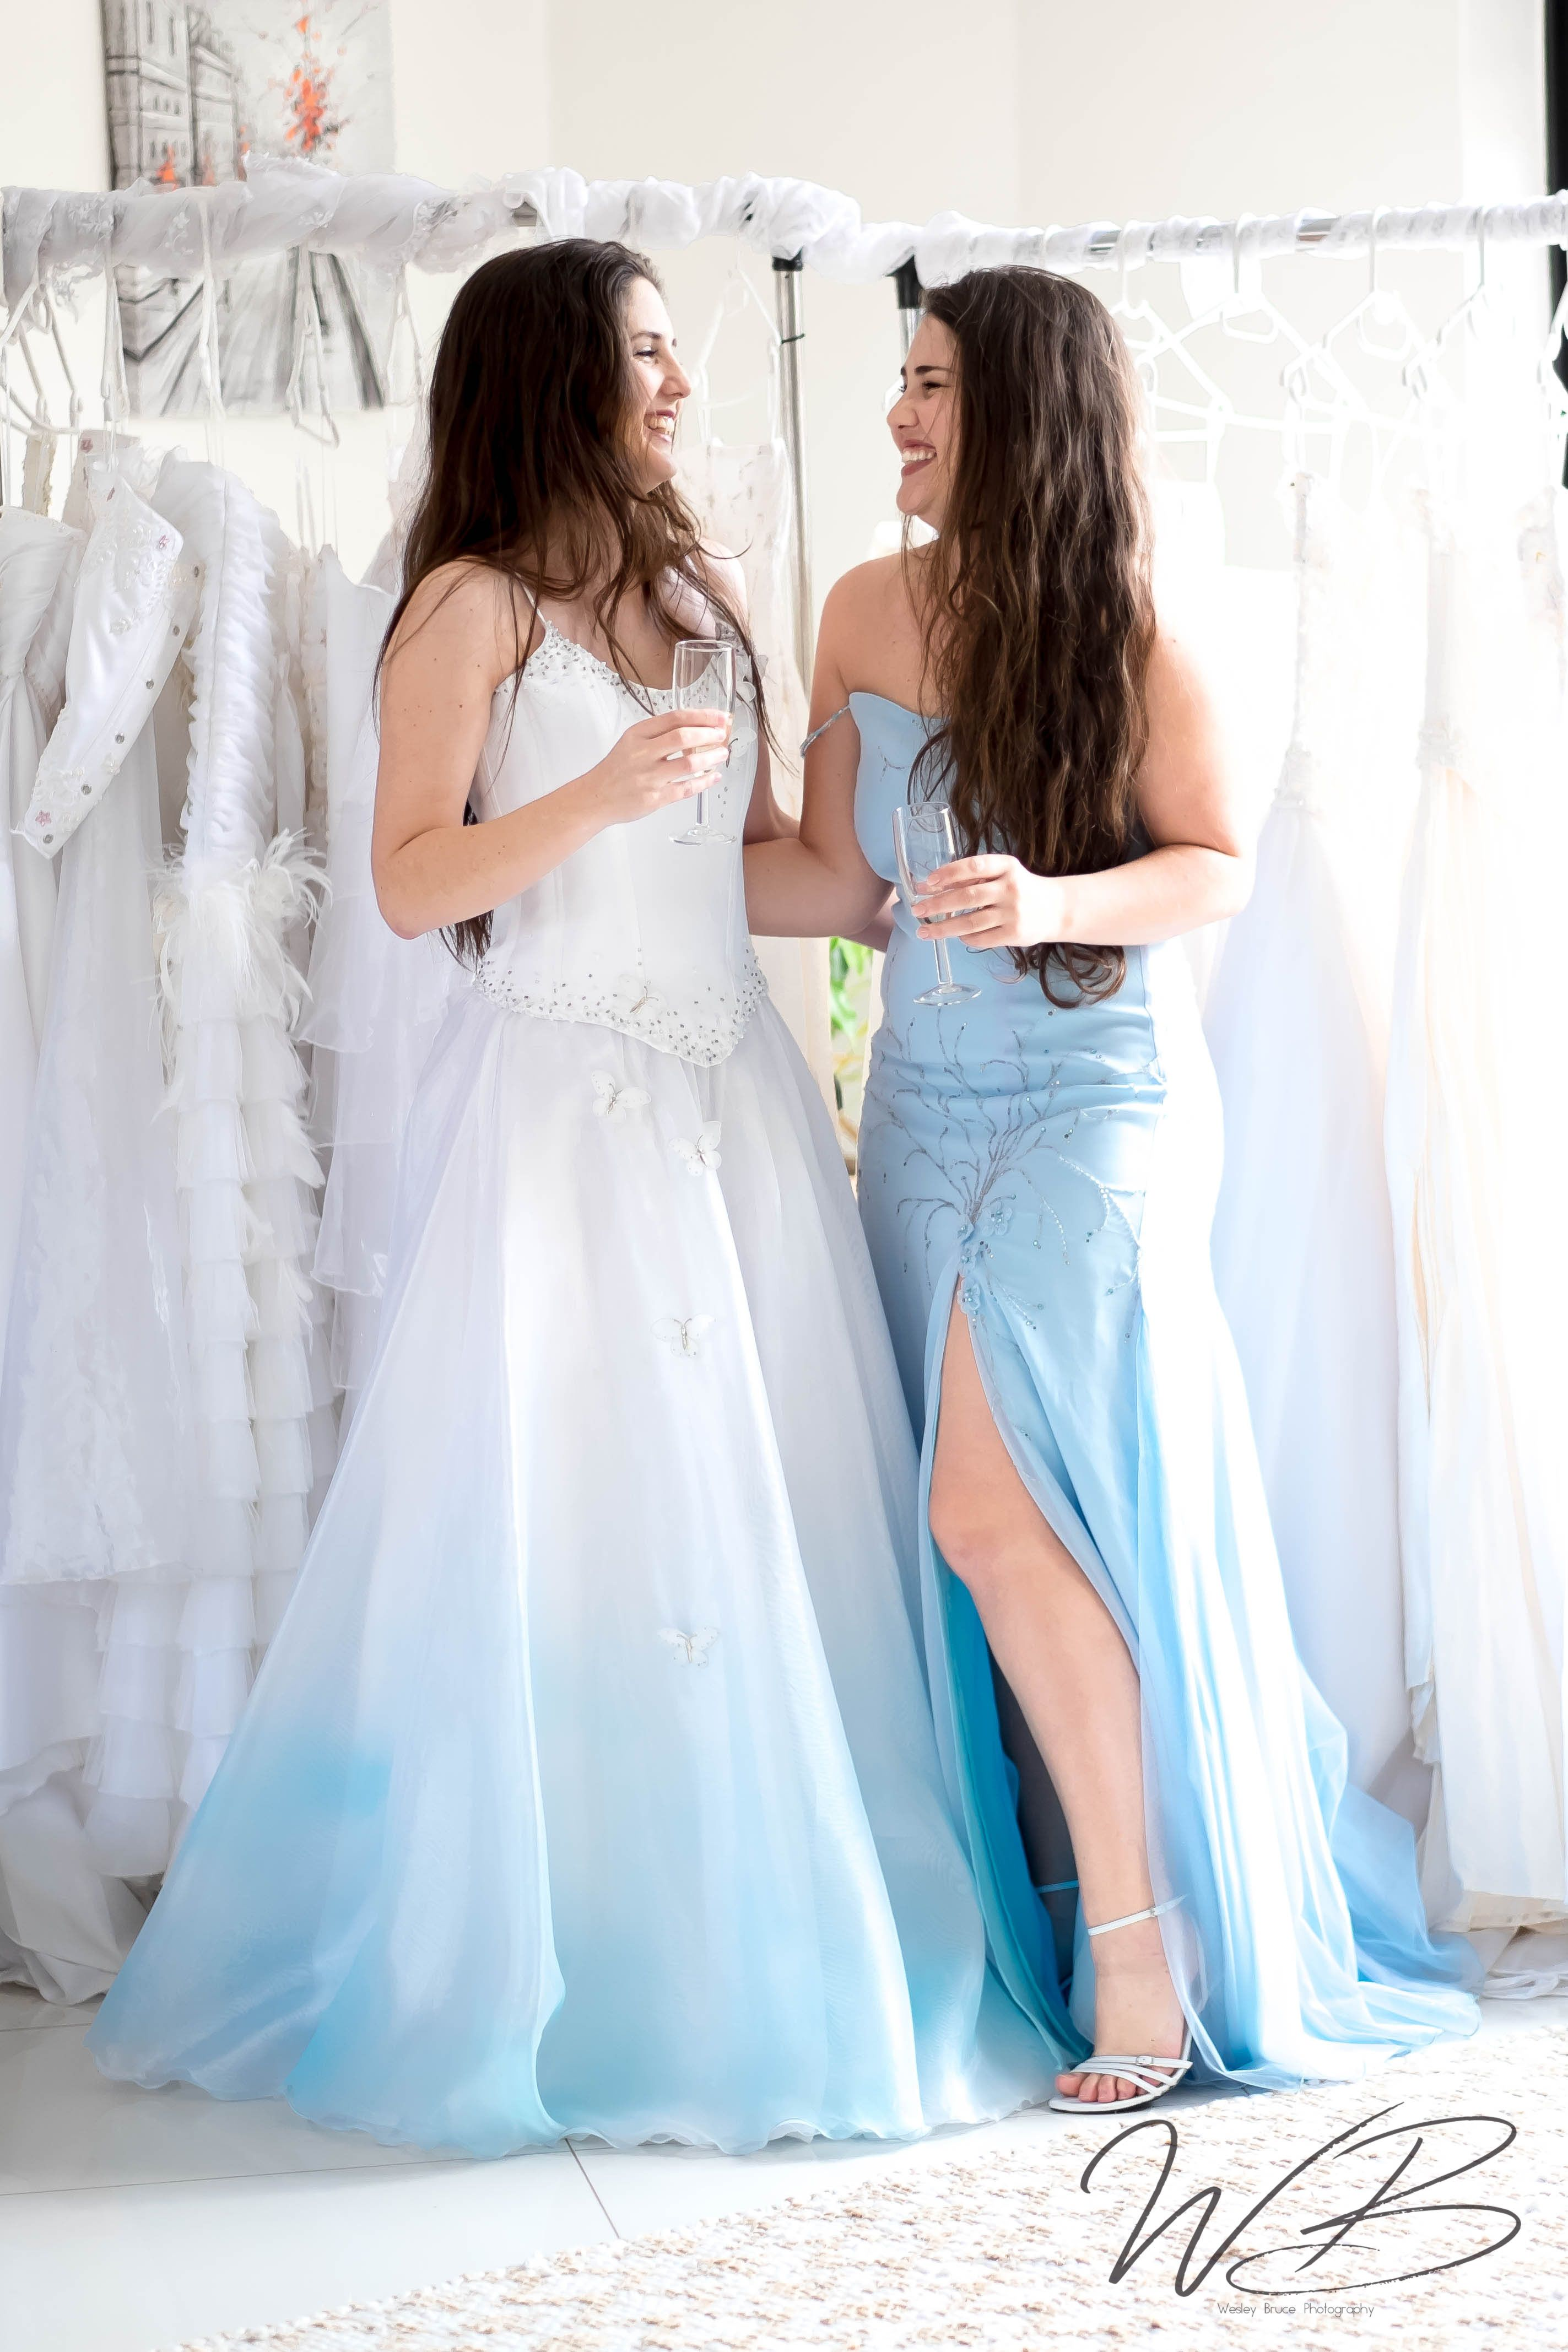 Catherine anns designs in port elizabeth south africa offers a catherine anns designs in port elizabeth south africa offers a variety of wedding dresses bridesmaids dresses matric farewell gowns and mother ombrellifo Image collections